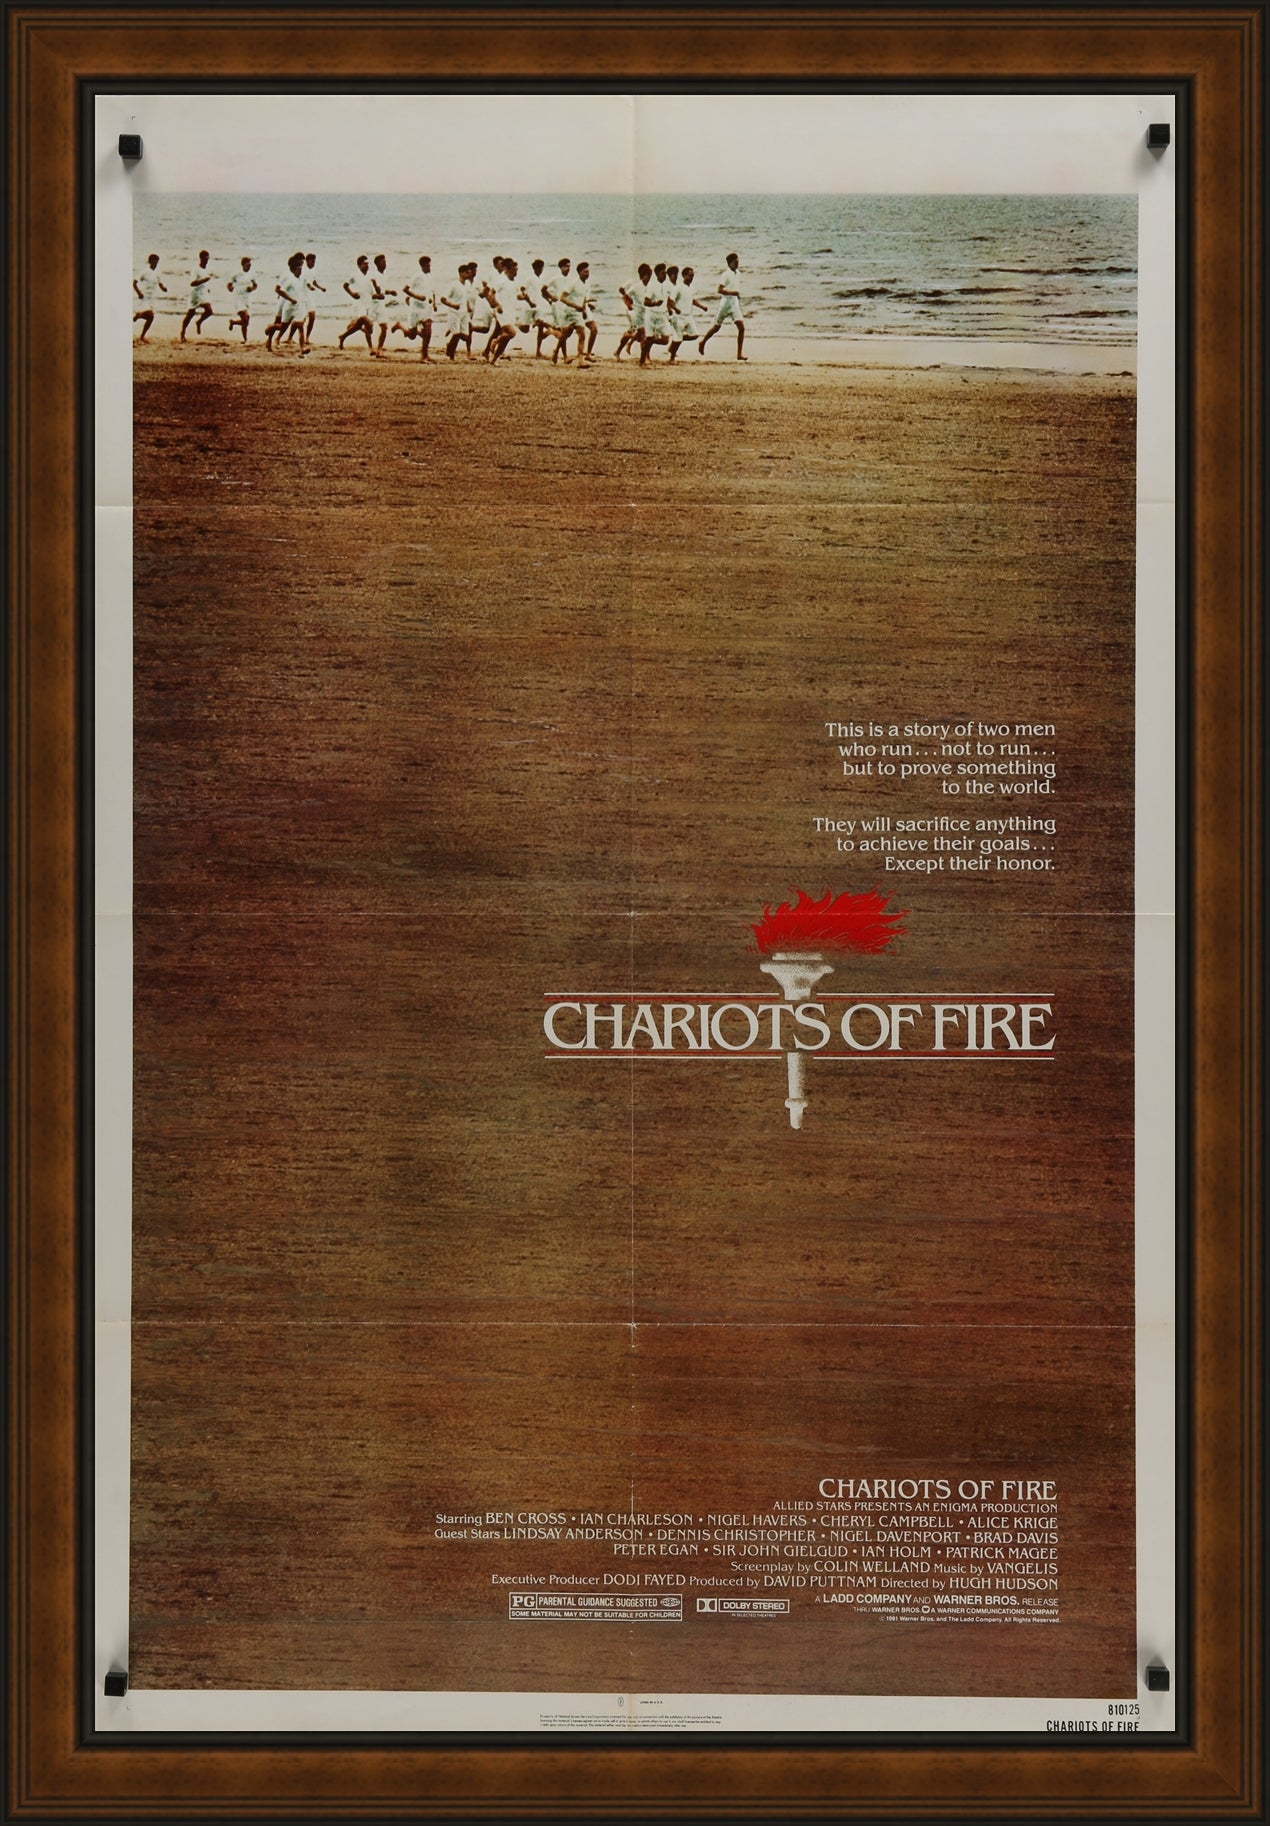 A one sheet movie / film poster for Chariots of Fire